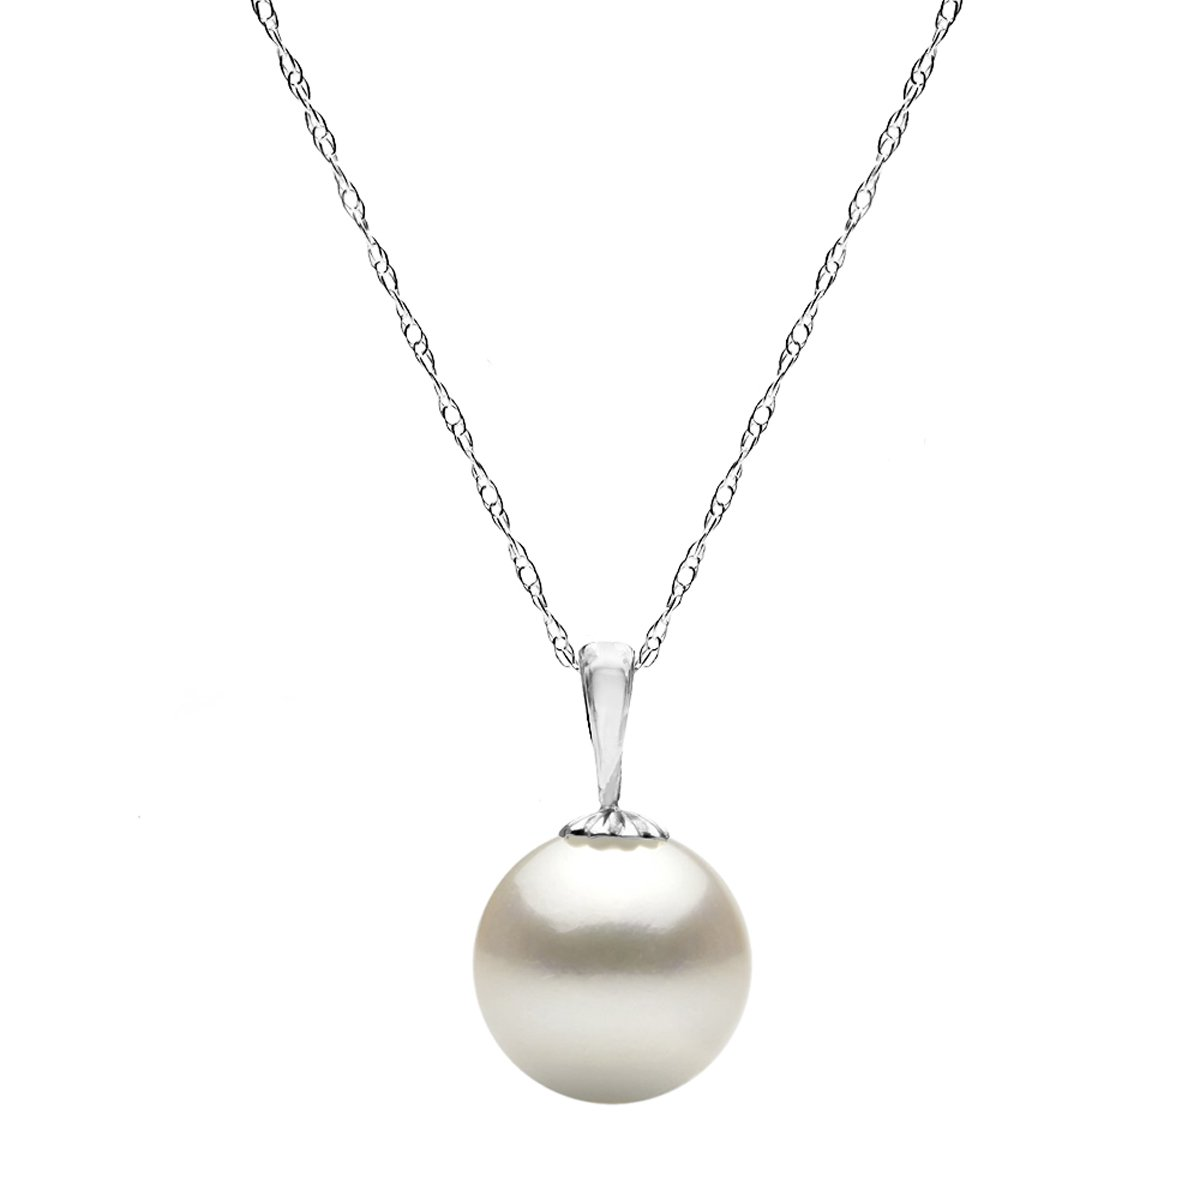 14K White Gold Chain White Freshwater Cultured Pearl Pendant Girls Necklace 18 inch